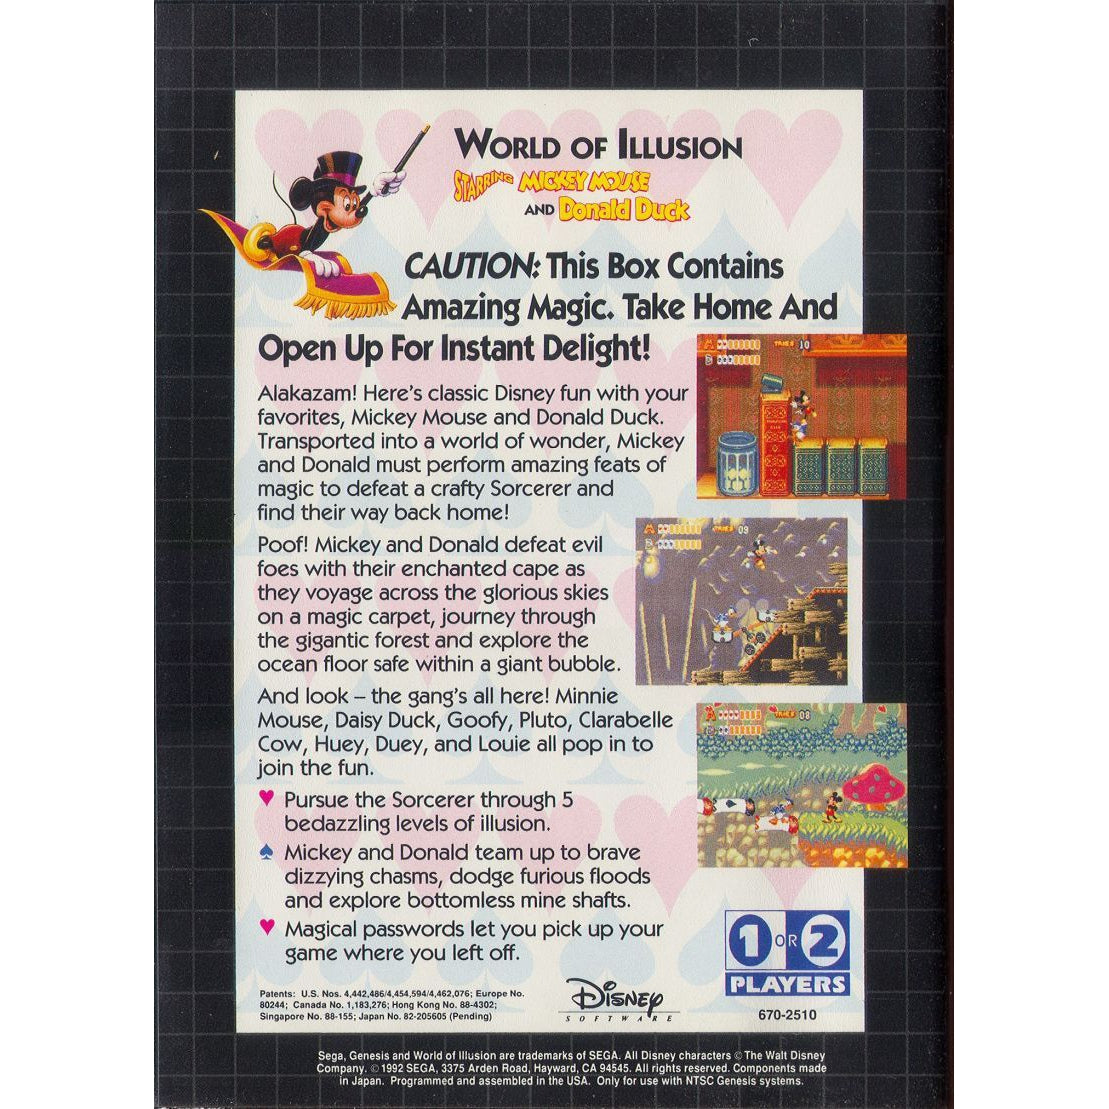 World of Illusion Starring Mickey Mouse and Donald Duck  - Sega Genesis Game - YourGamingShop.com - Buy, Sell, Trade Video Games Online. 120 Day Warranty. Satisfaction Guaranteed.